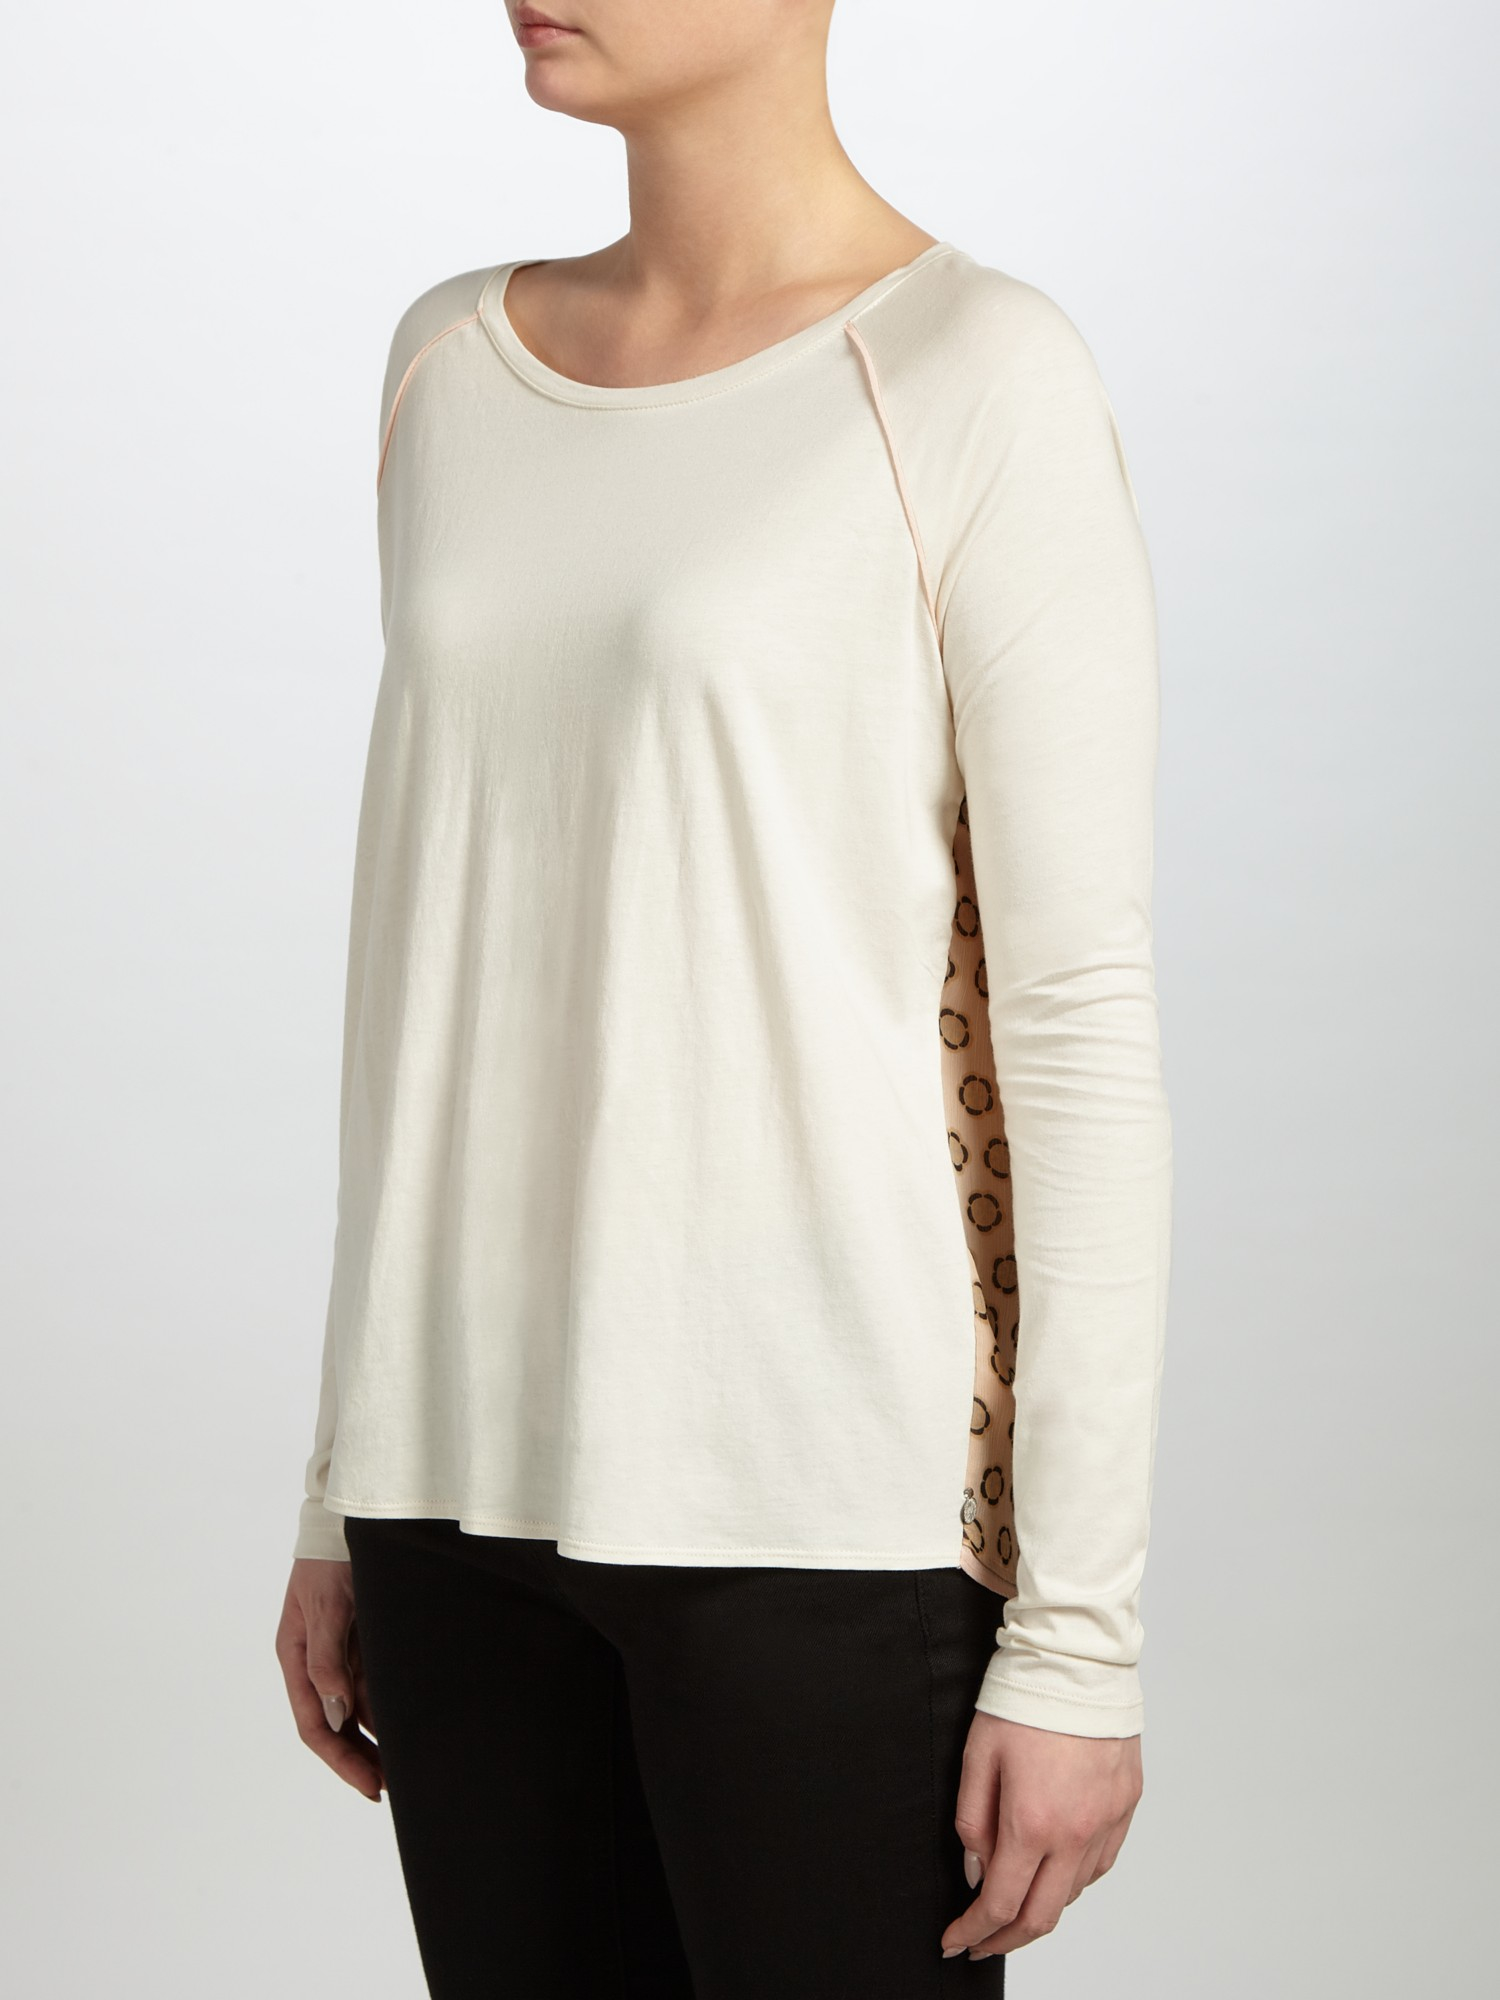 Maison Scotch Printed Back T Shirt In White Lyst